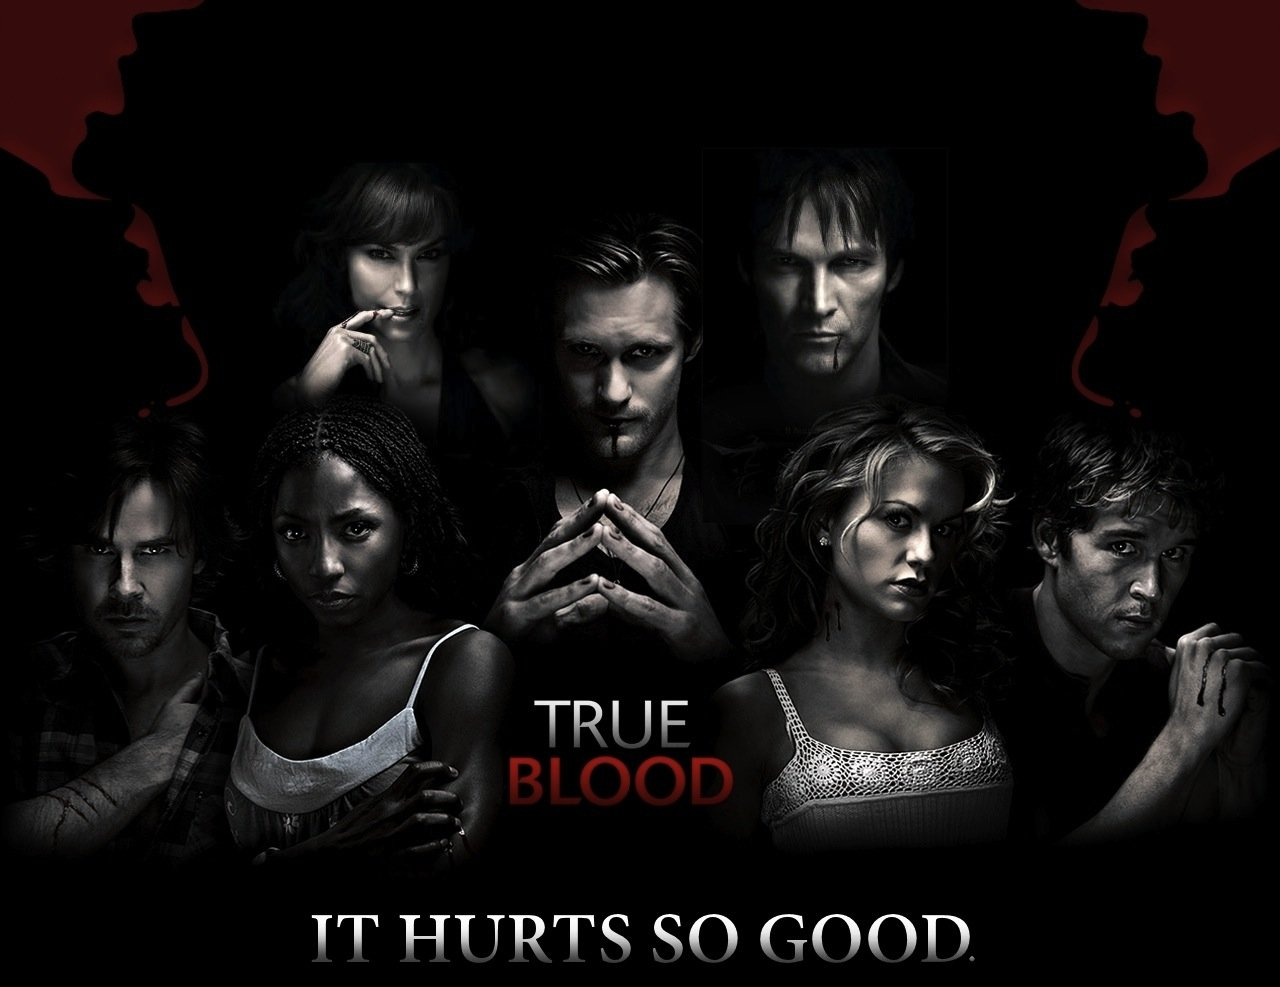 Suffering from 'True Blood' Withdrawal? Watching the New Full-Cast PSA Makes Waiting 'Suck a Lot Less' (VIDEO)